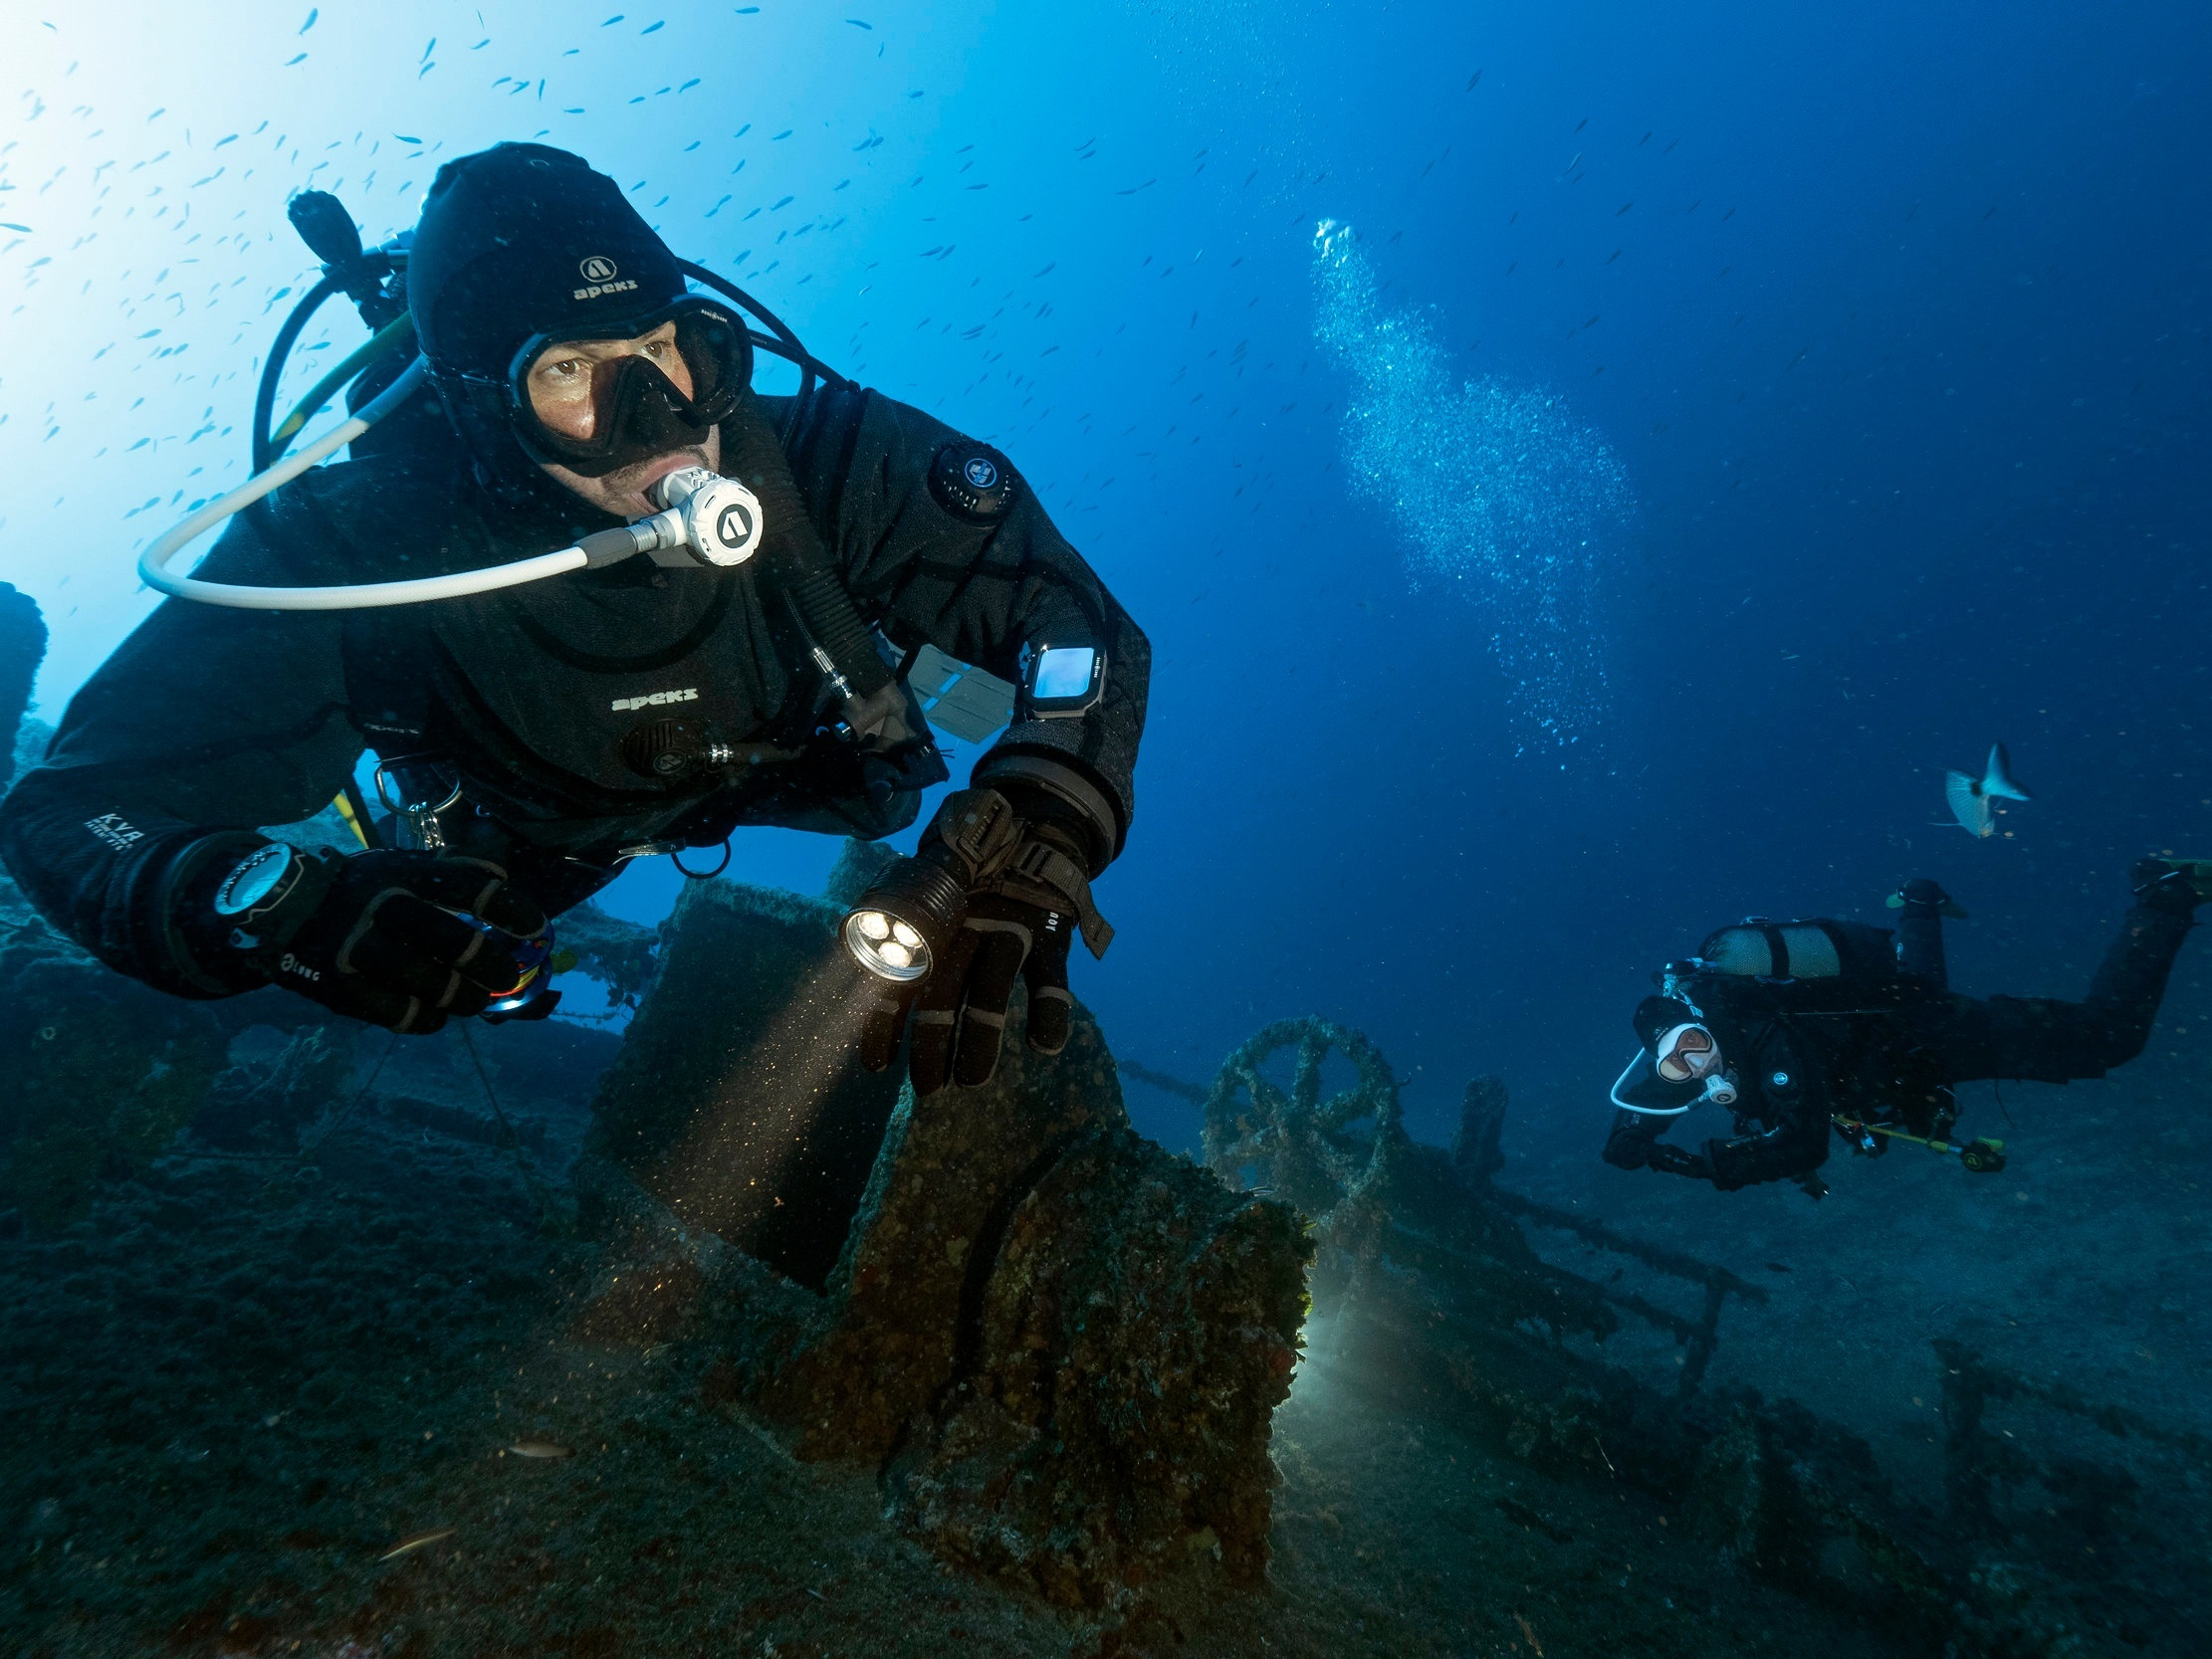 Step 2 - Open Water Dives - to build confidence and expand your scuba skills to help you improve as a diver and discover new ways to enjoy scuba diving